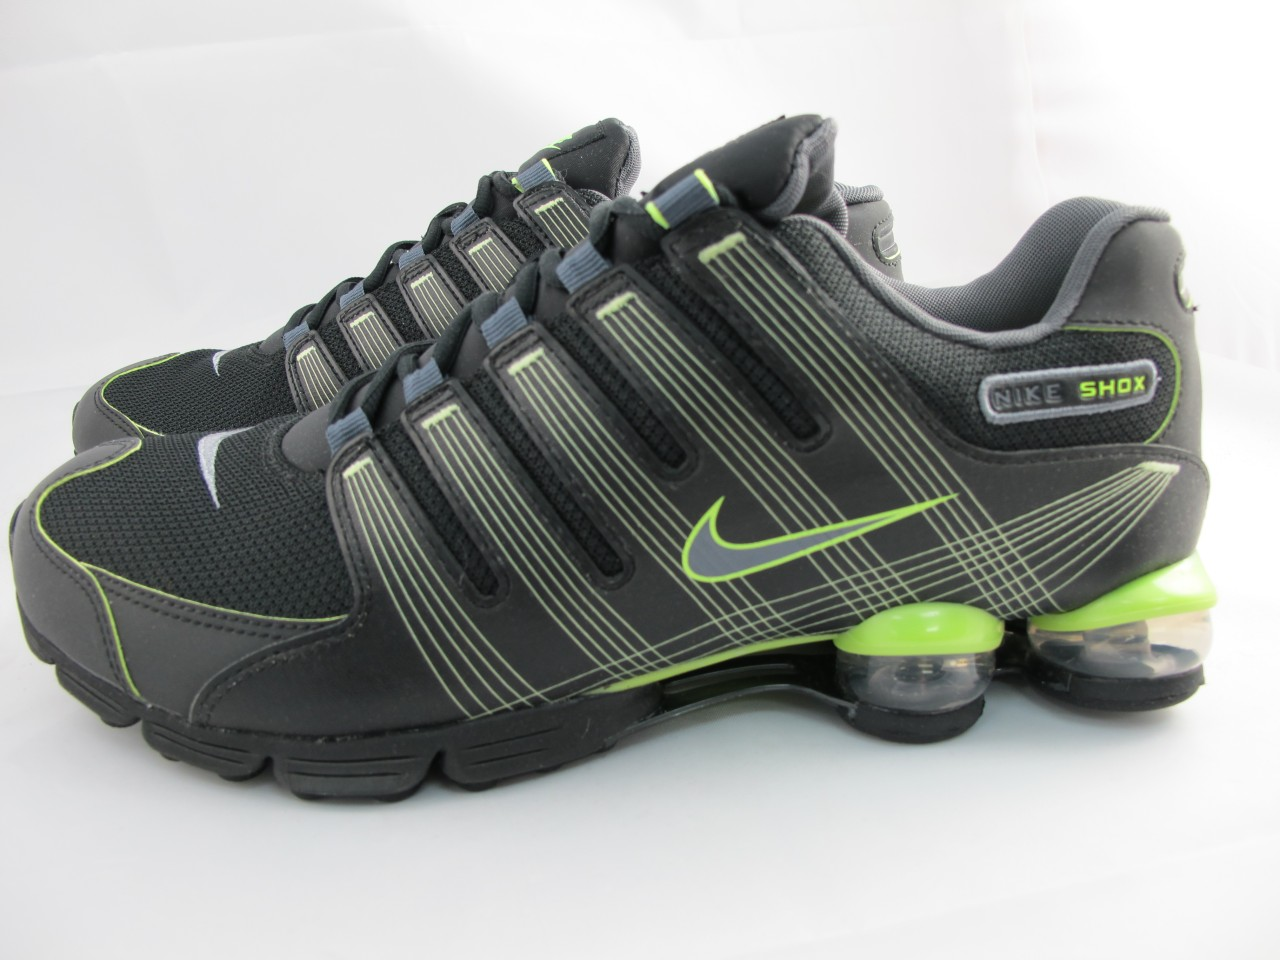 finest selection 91a85 3b93c nike air shox shoes for men